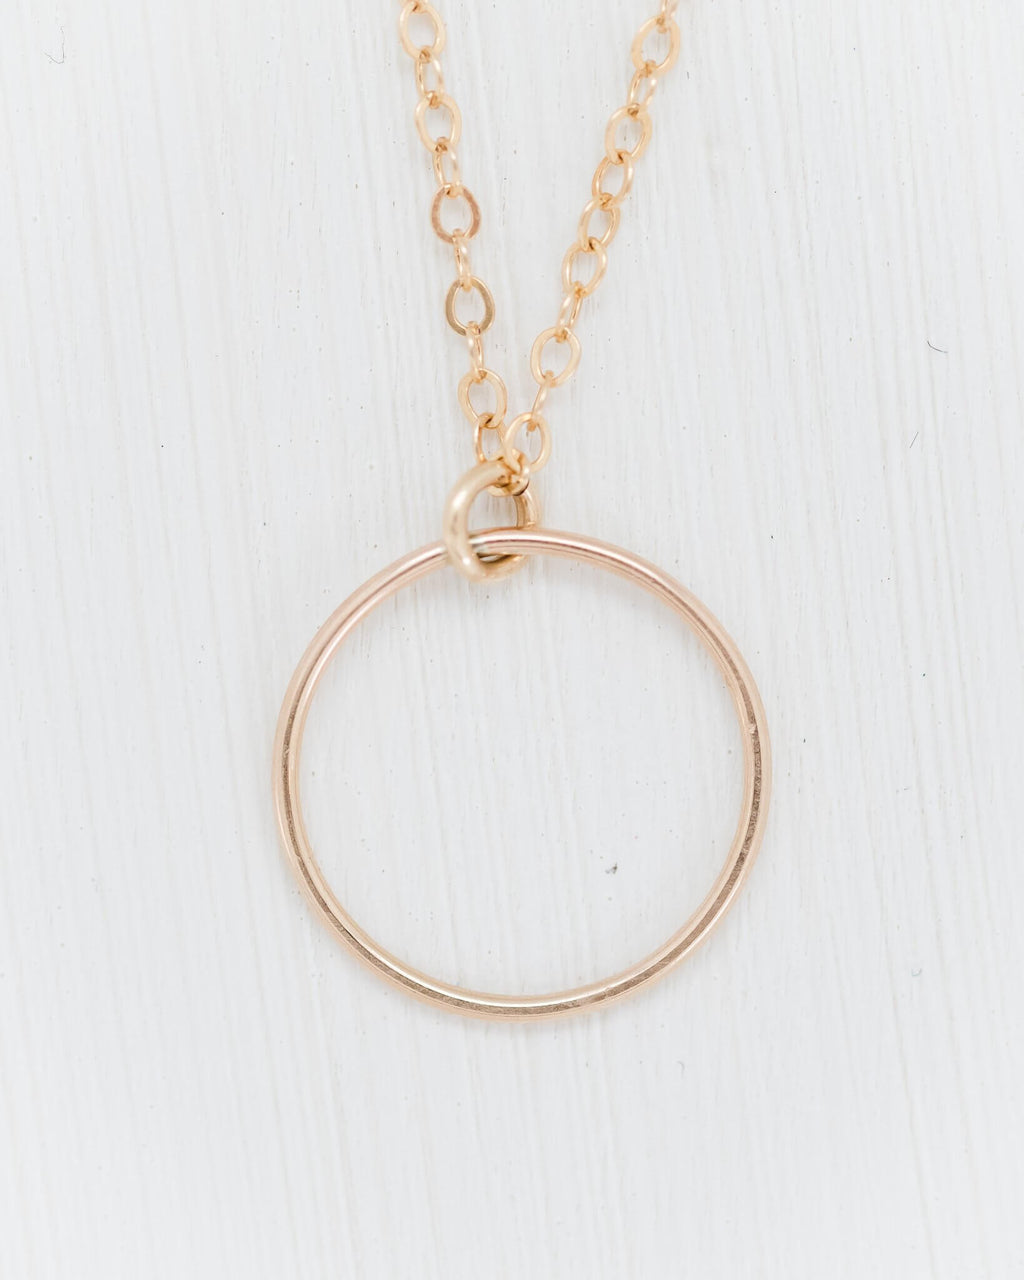 Anna Janelle - The Forever Necklace - INGAR